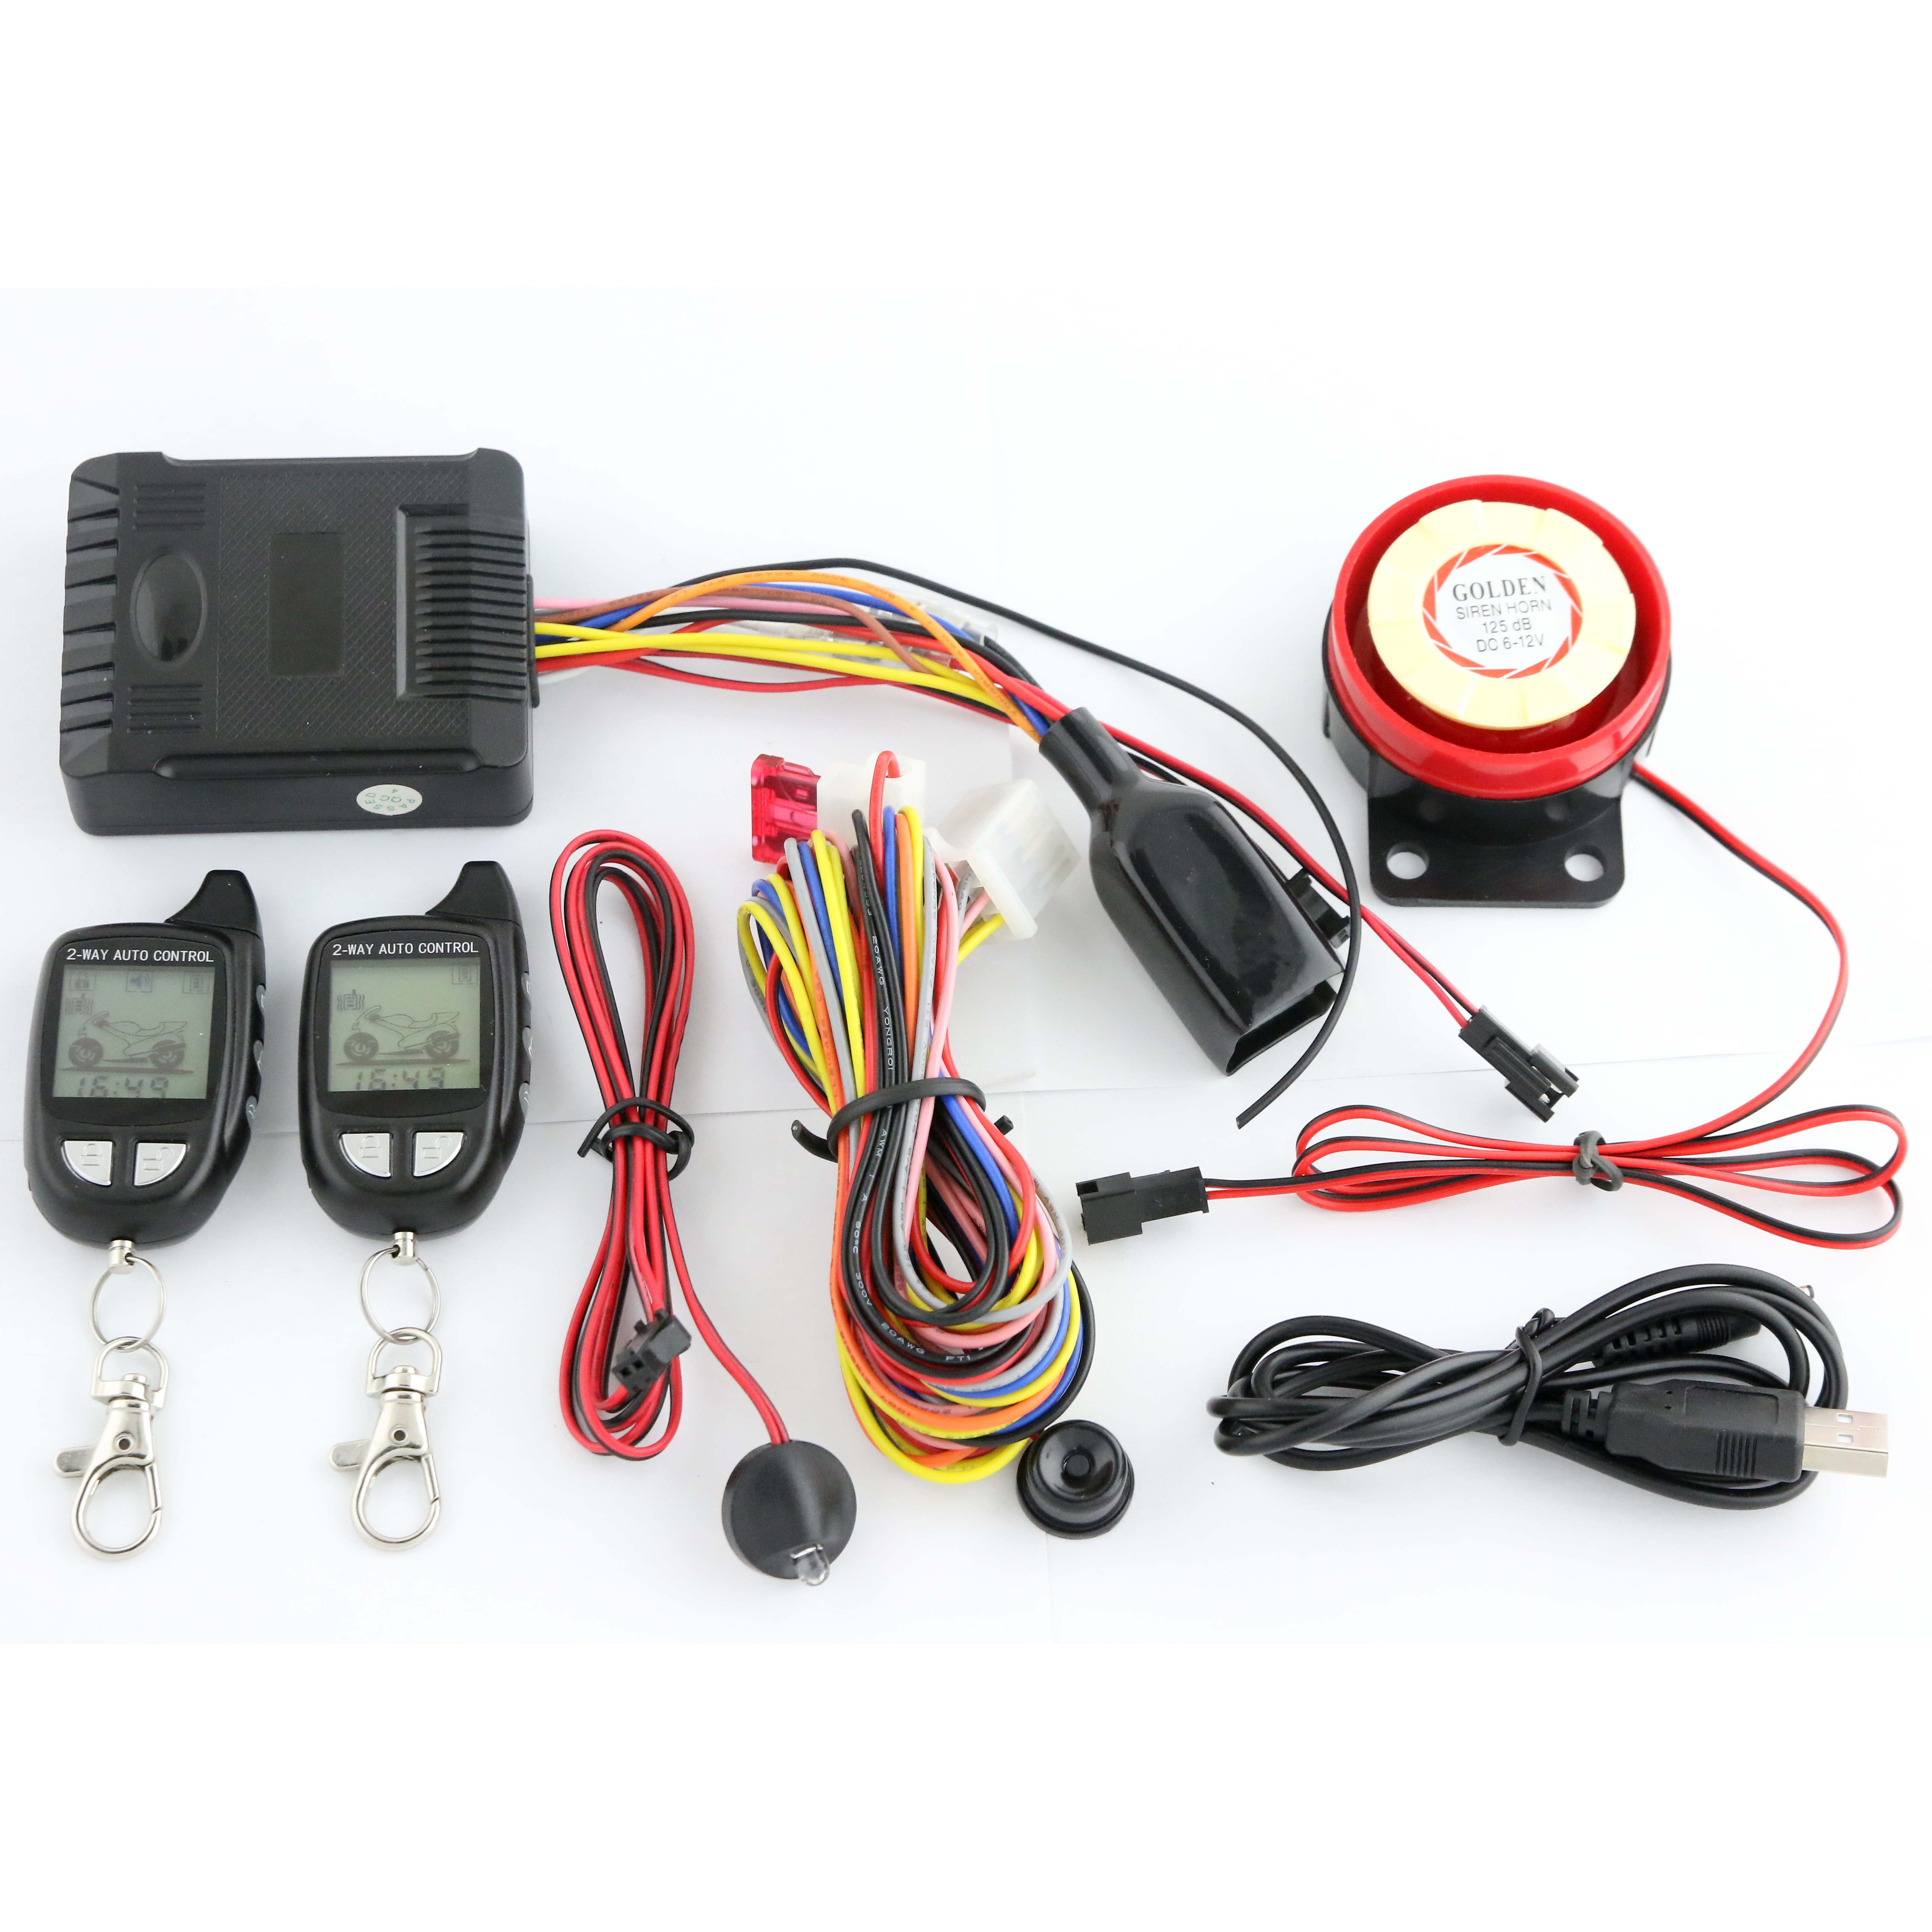 HUATAI 2 way 1500 meters motorcycle alarm with remote start <strong>shock</strong> warning <strong>HT</strong>-M09F2